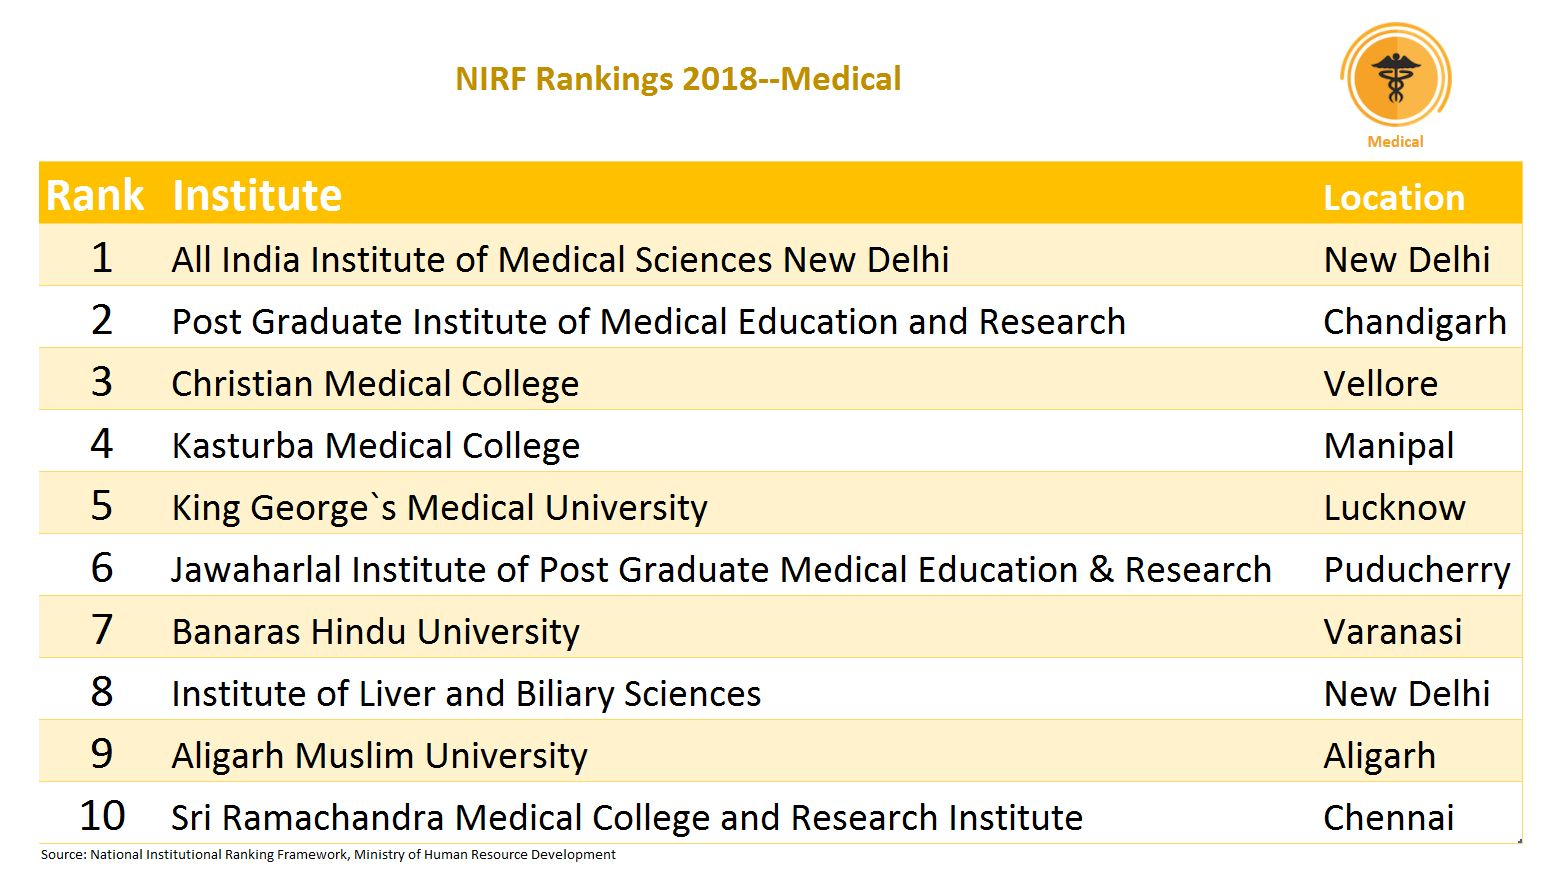 As expected, AIIMS New Delhi topped the list in the area of medicine. There was a good mix of private and government medical colleges. Engineering and medicine are often considered the two most popular fields of education in the country.